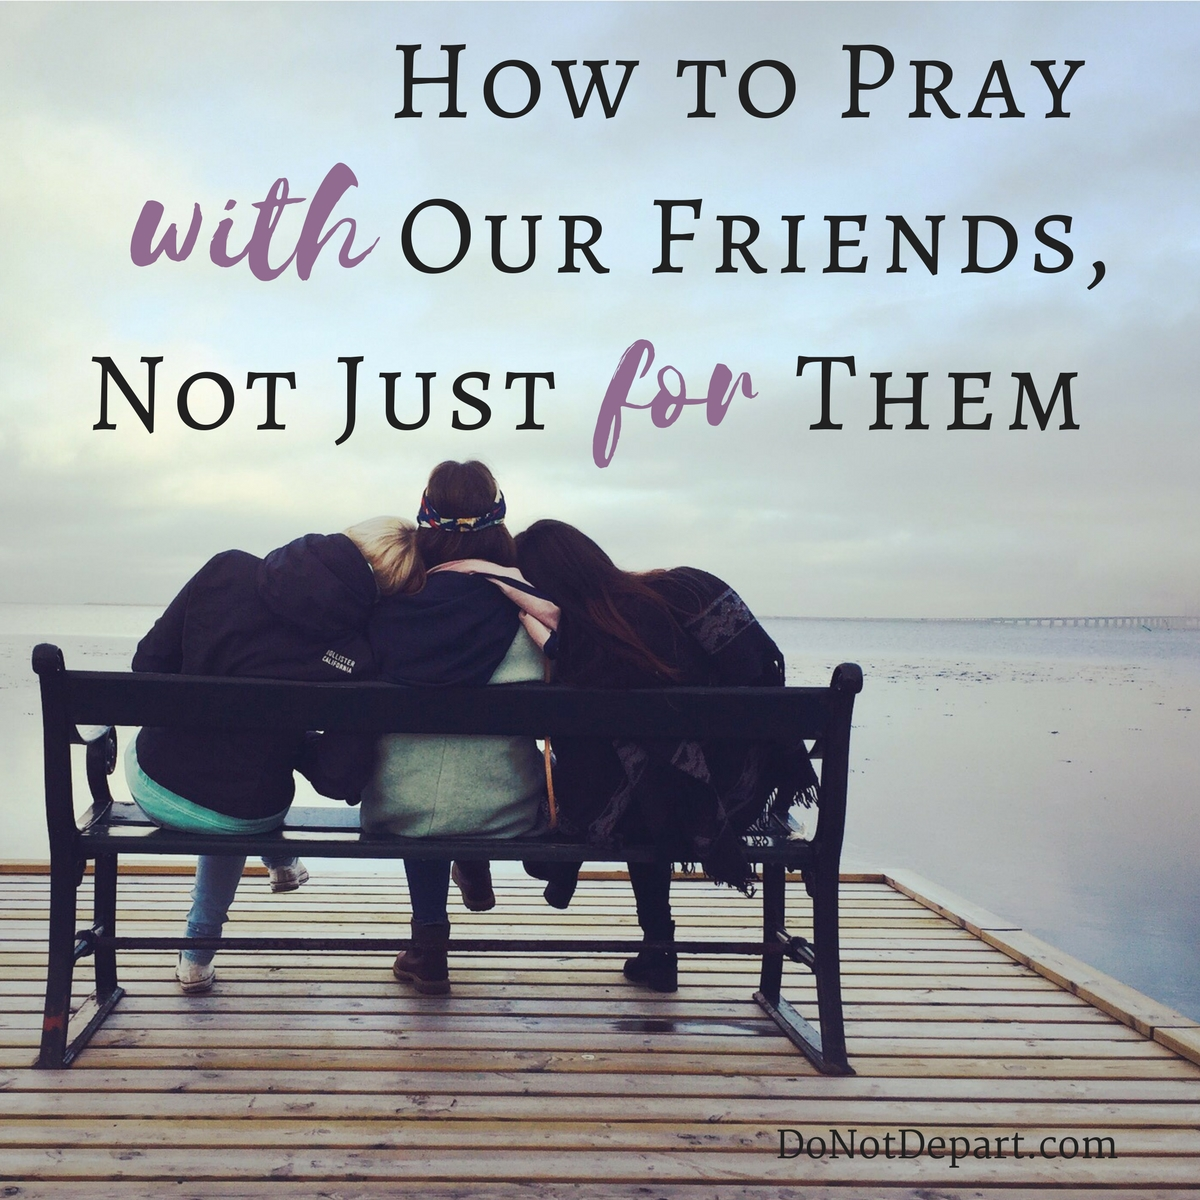 Pray-With-Friends-Not-Just-For